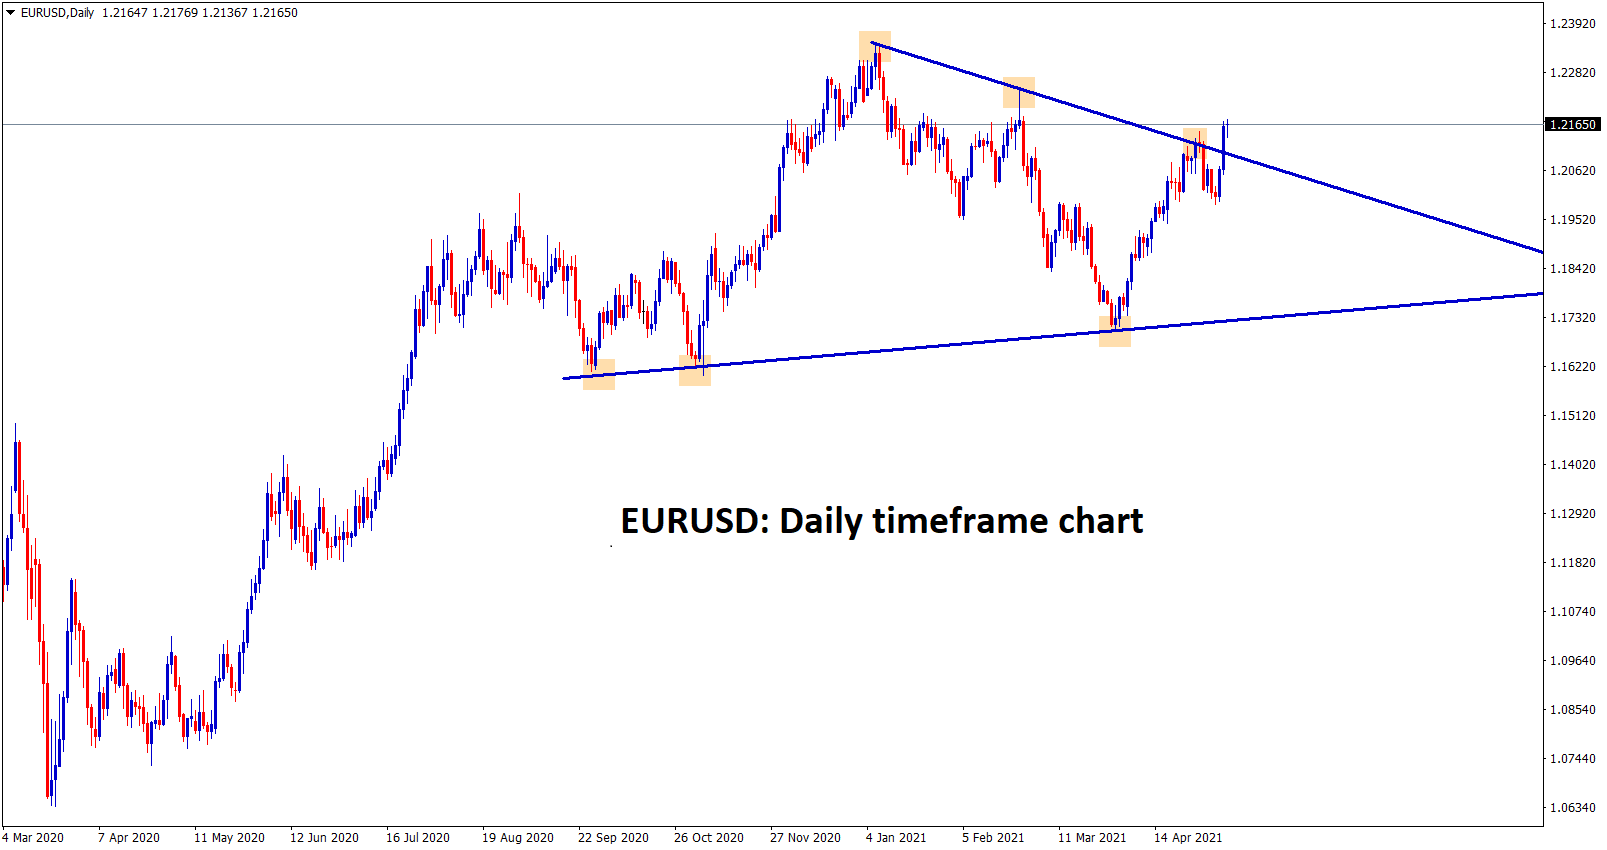 EURUSD is breaking the high of the symmetrical triangle pattern